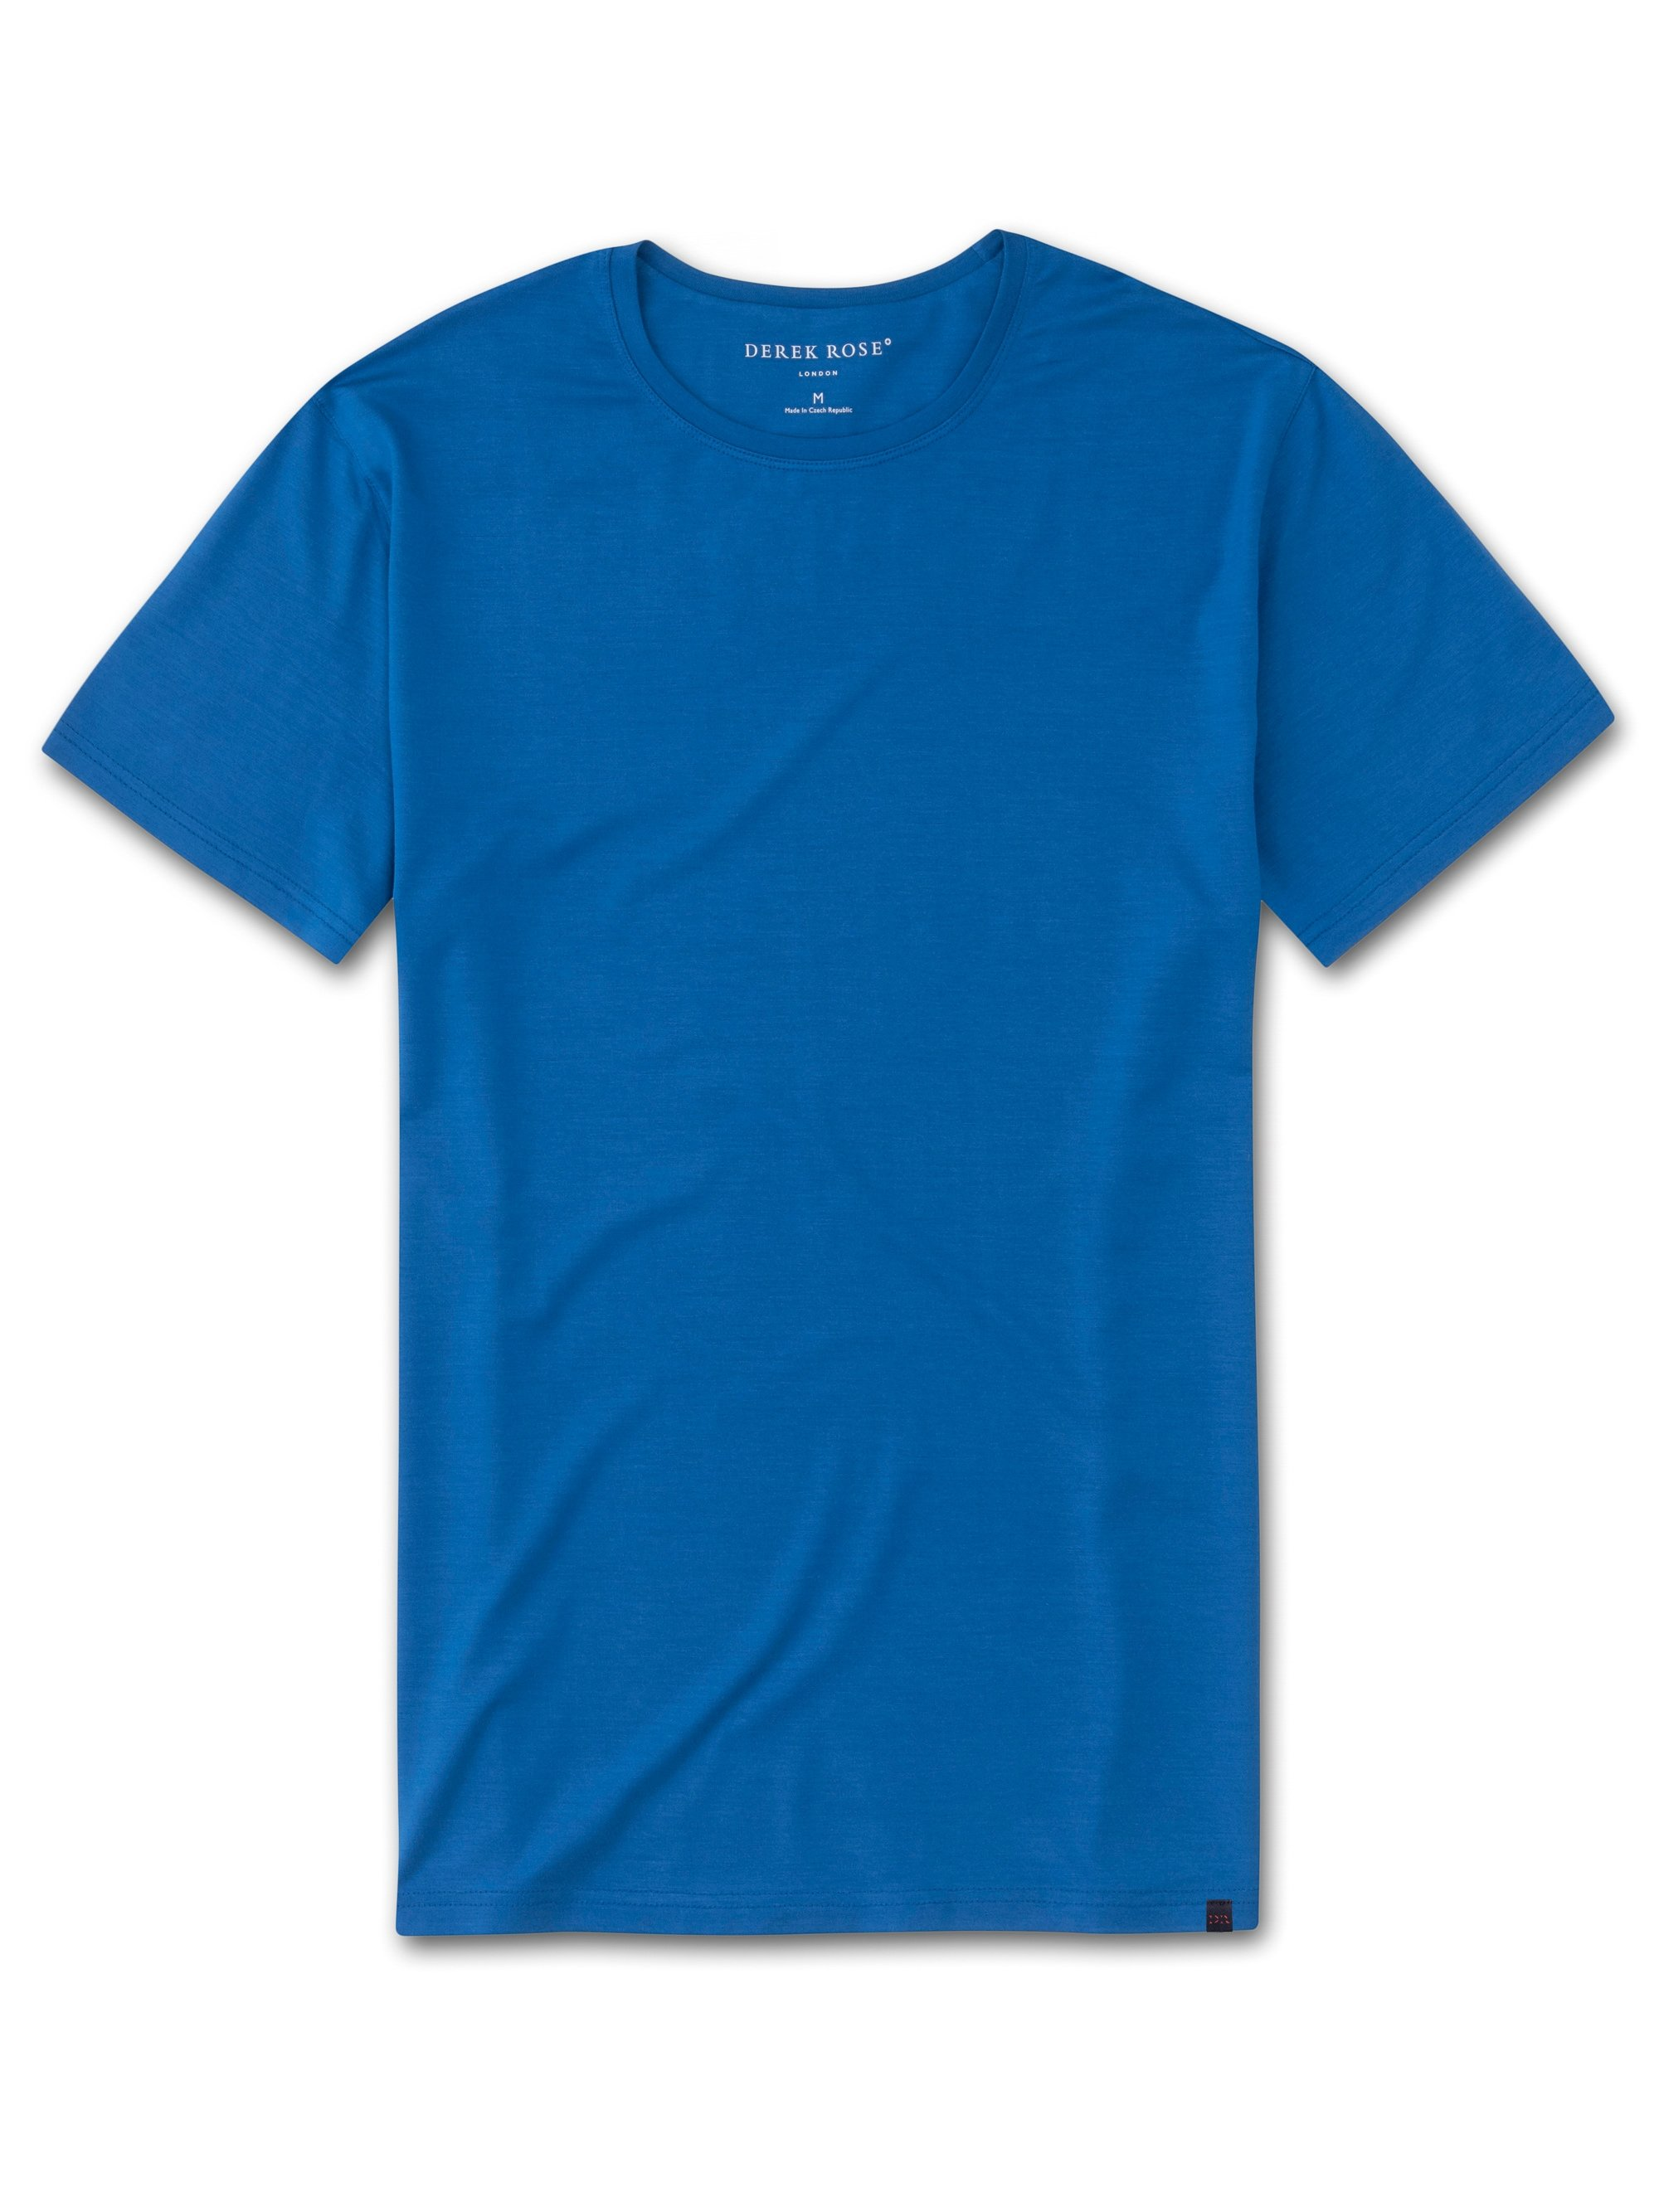 Men's Short Sleeve T-Shirt Basel 8 Micro Modal Stretch Blue